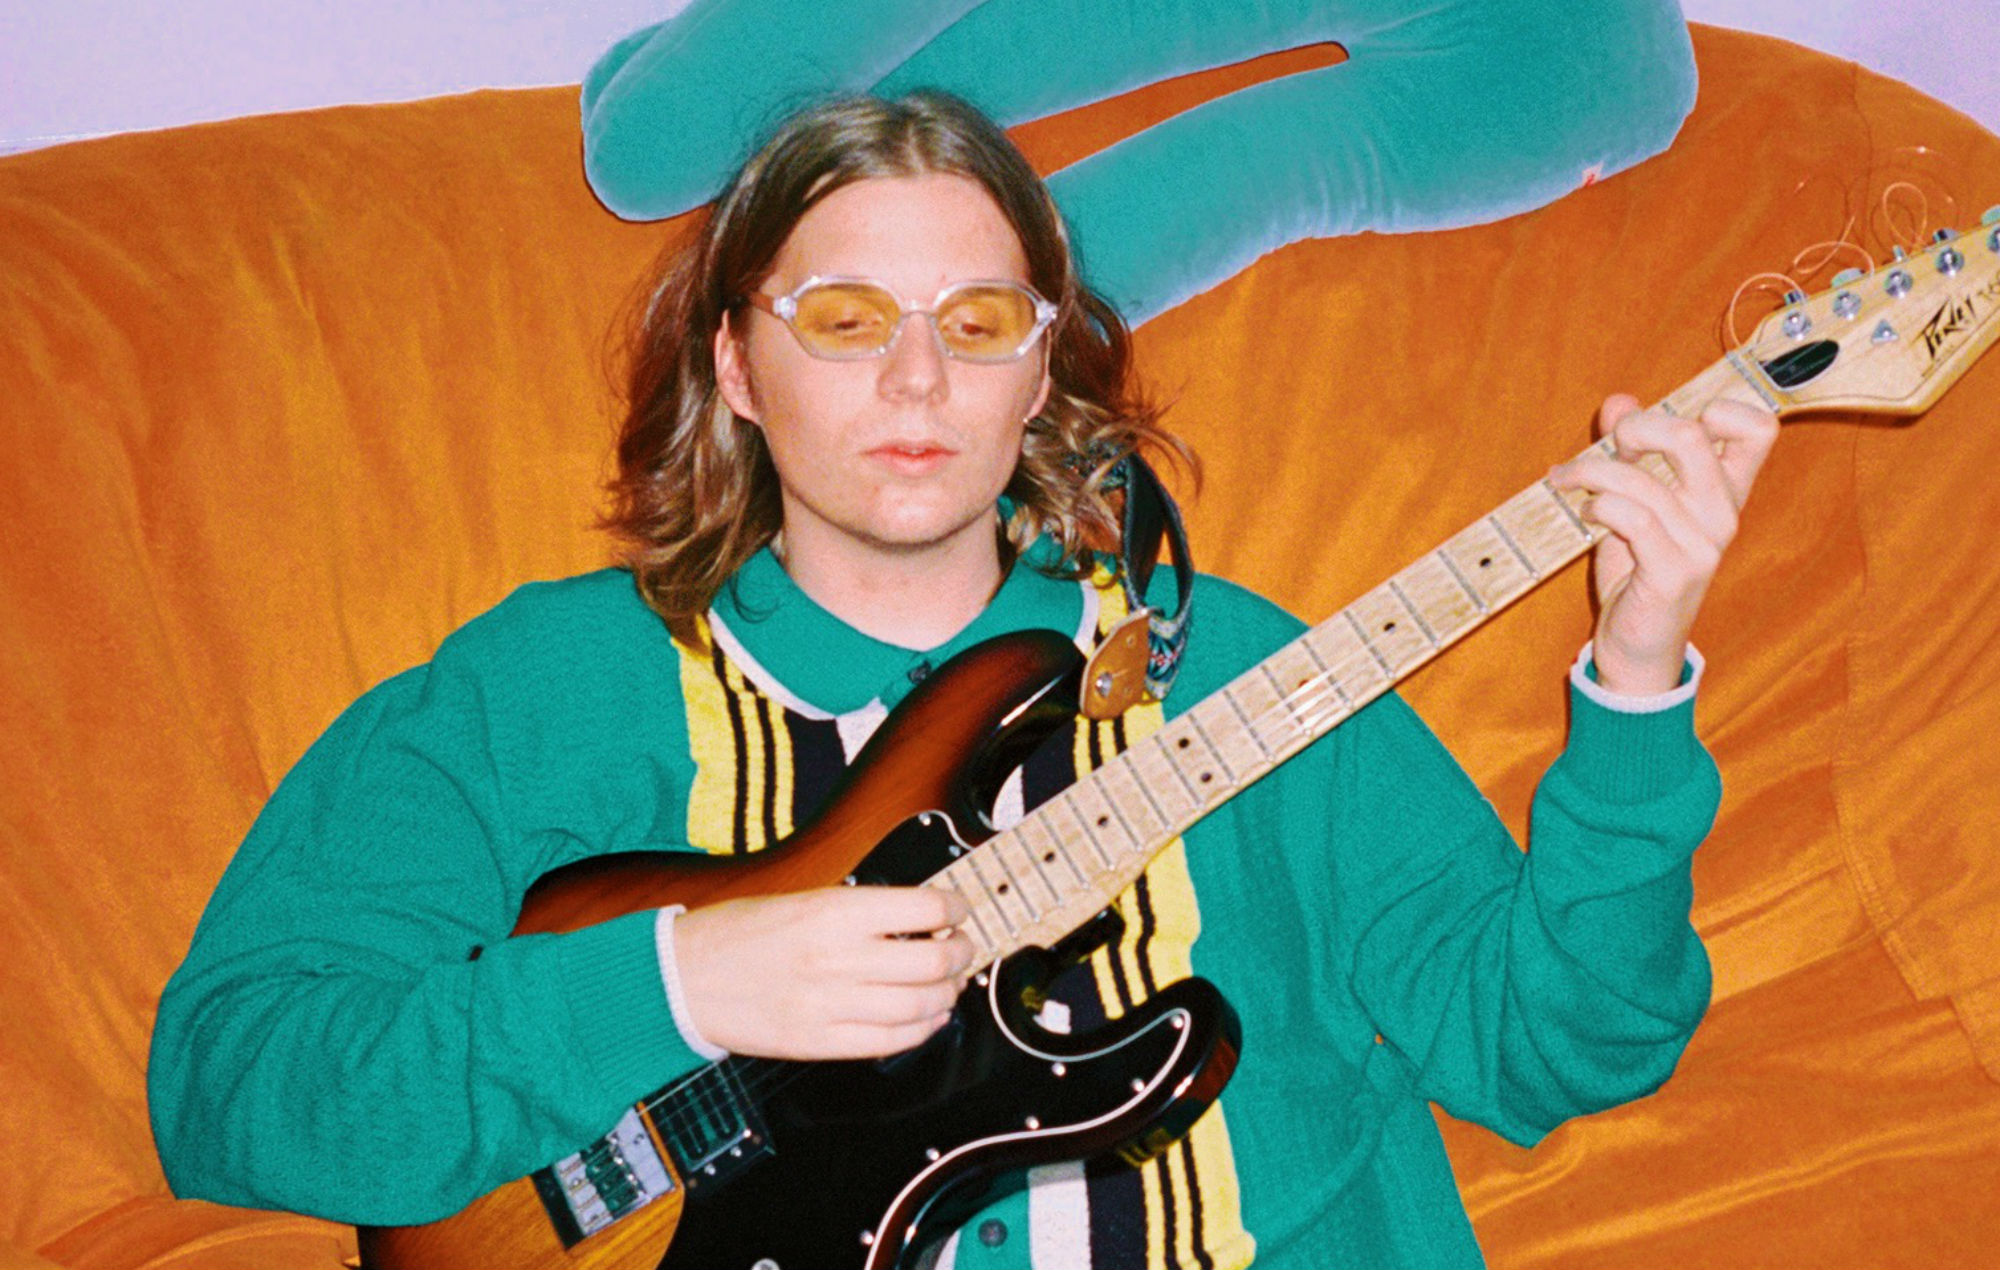 Jawny - 'For Abby' review: one of lockdown's most innovative and colourful  bedroom pop projects